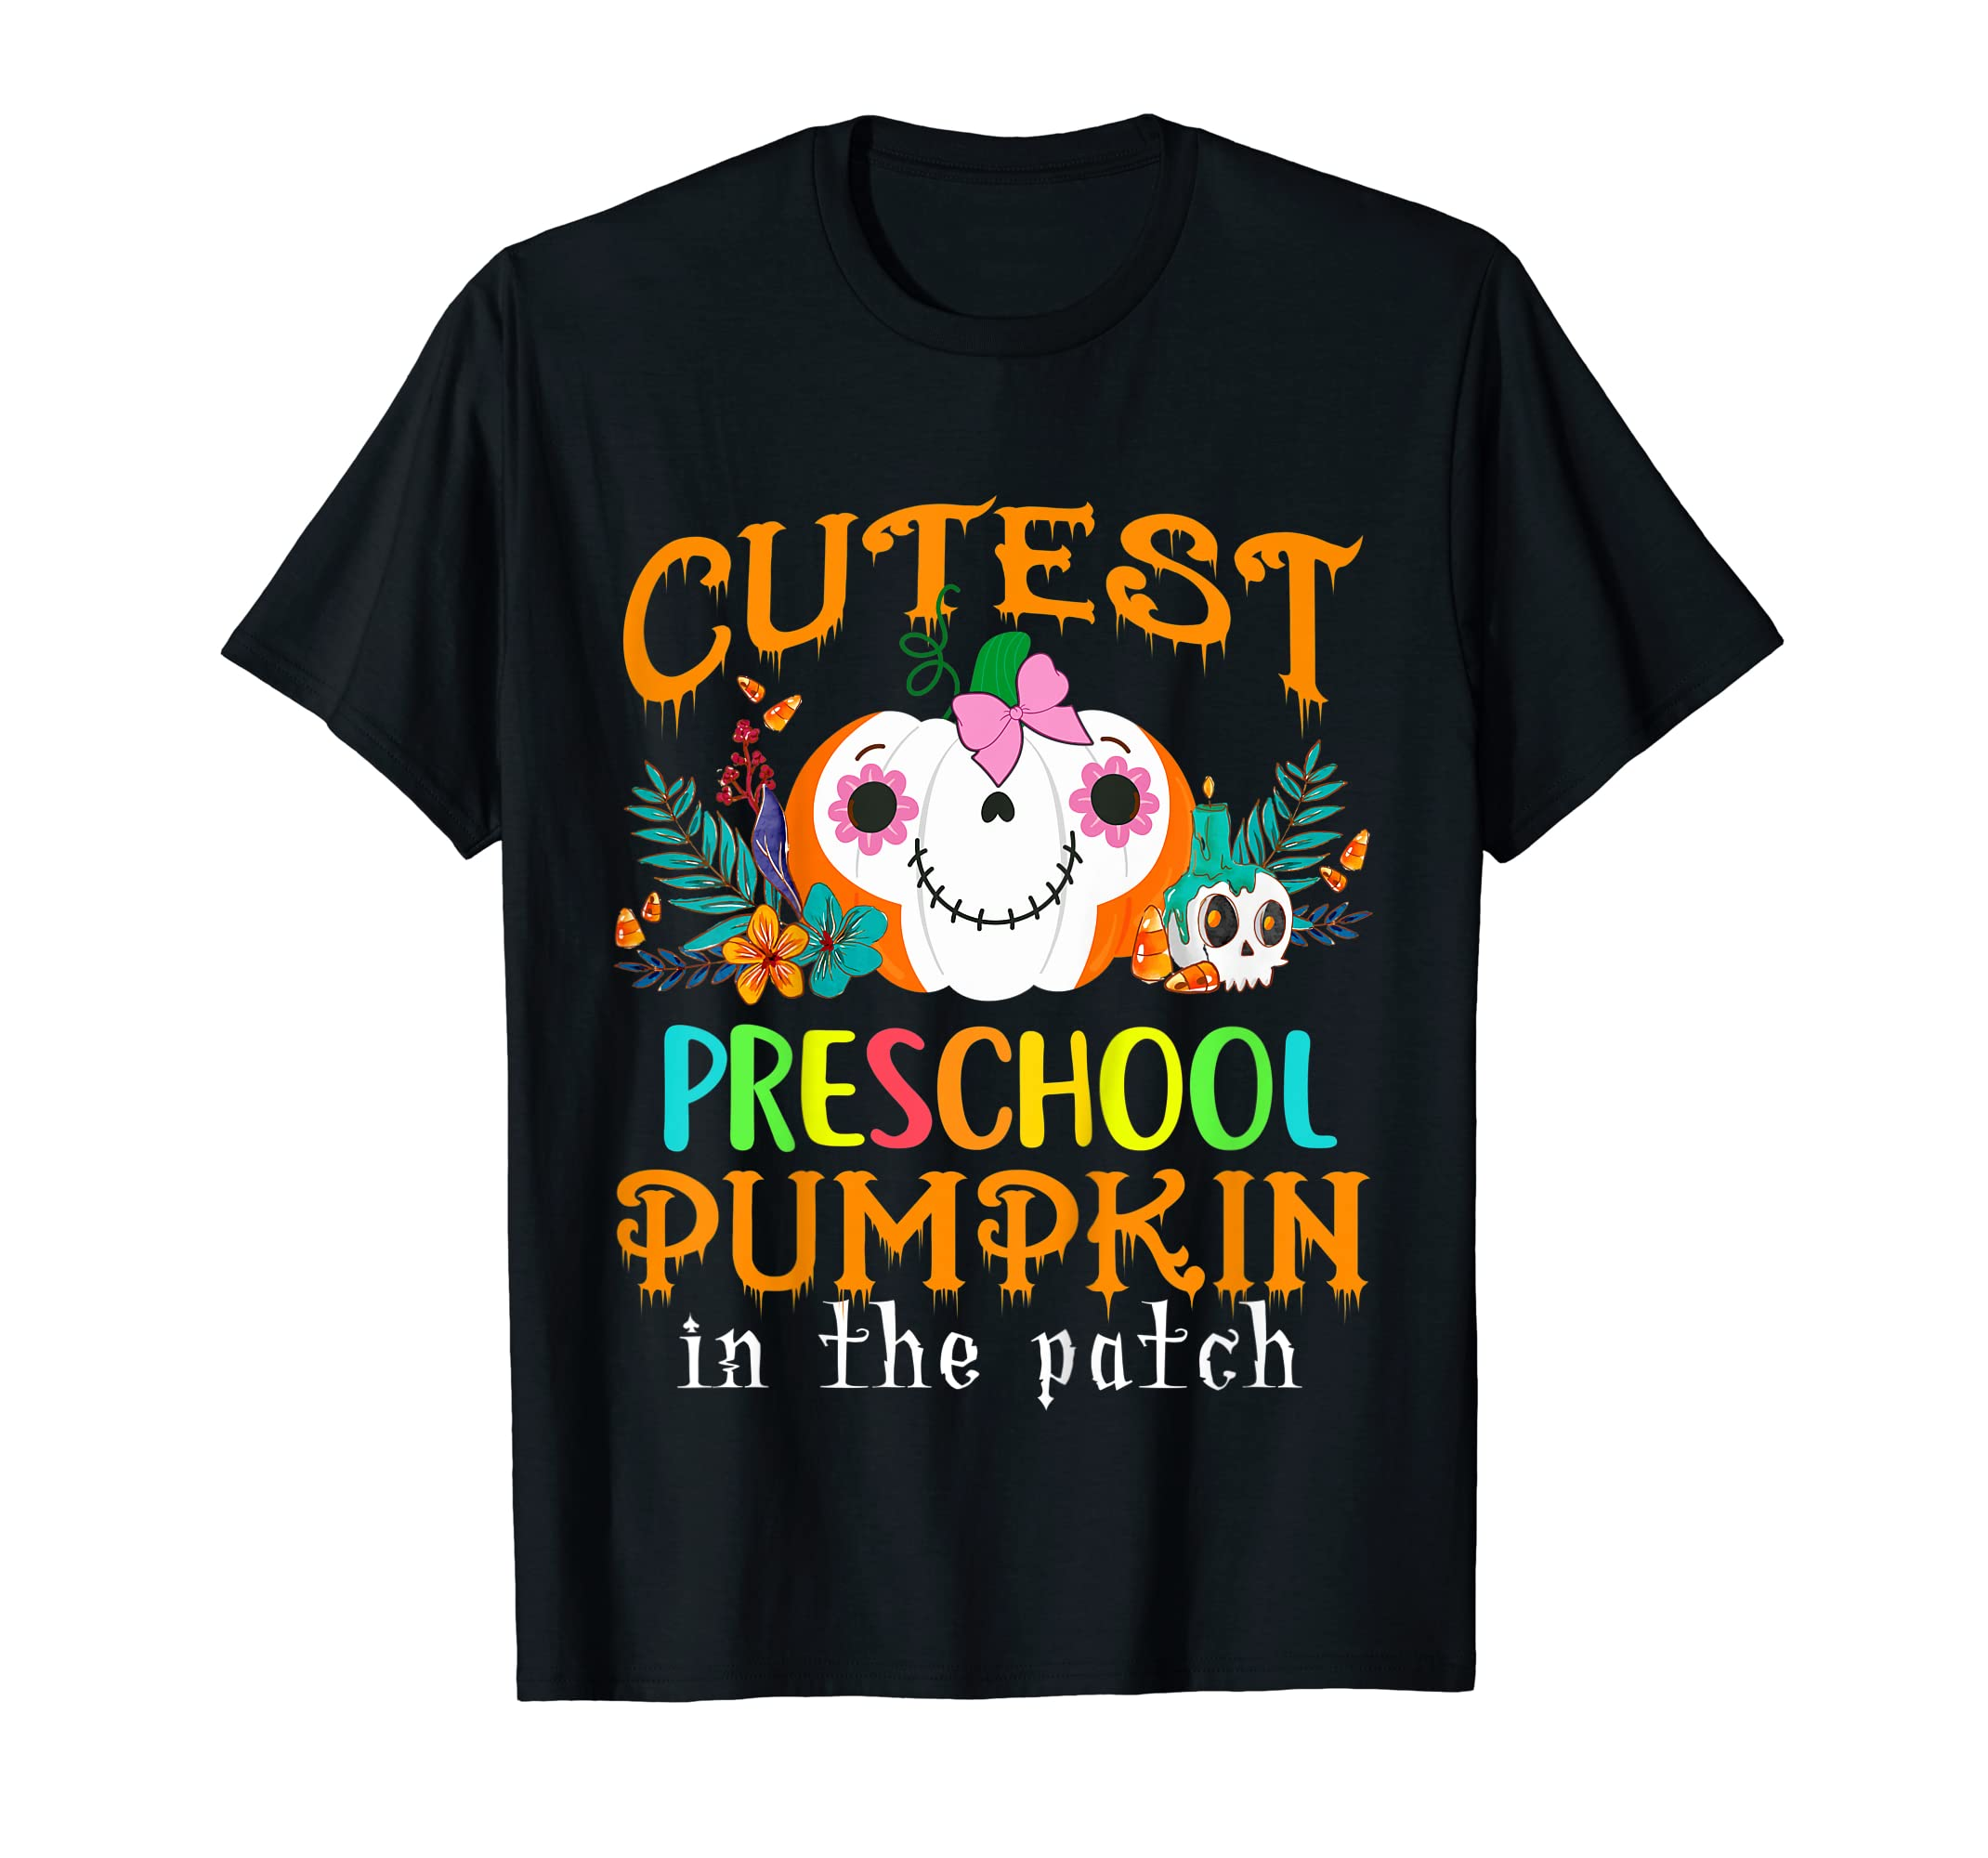 Kids Cutest Preschool Pumpkin In The Patch Halloween Costume Girl T-Shirt-Men's T-Shirt-Black